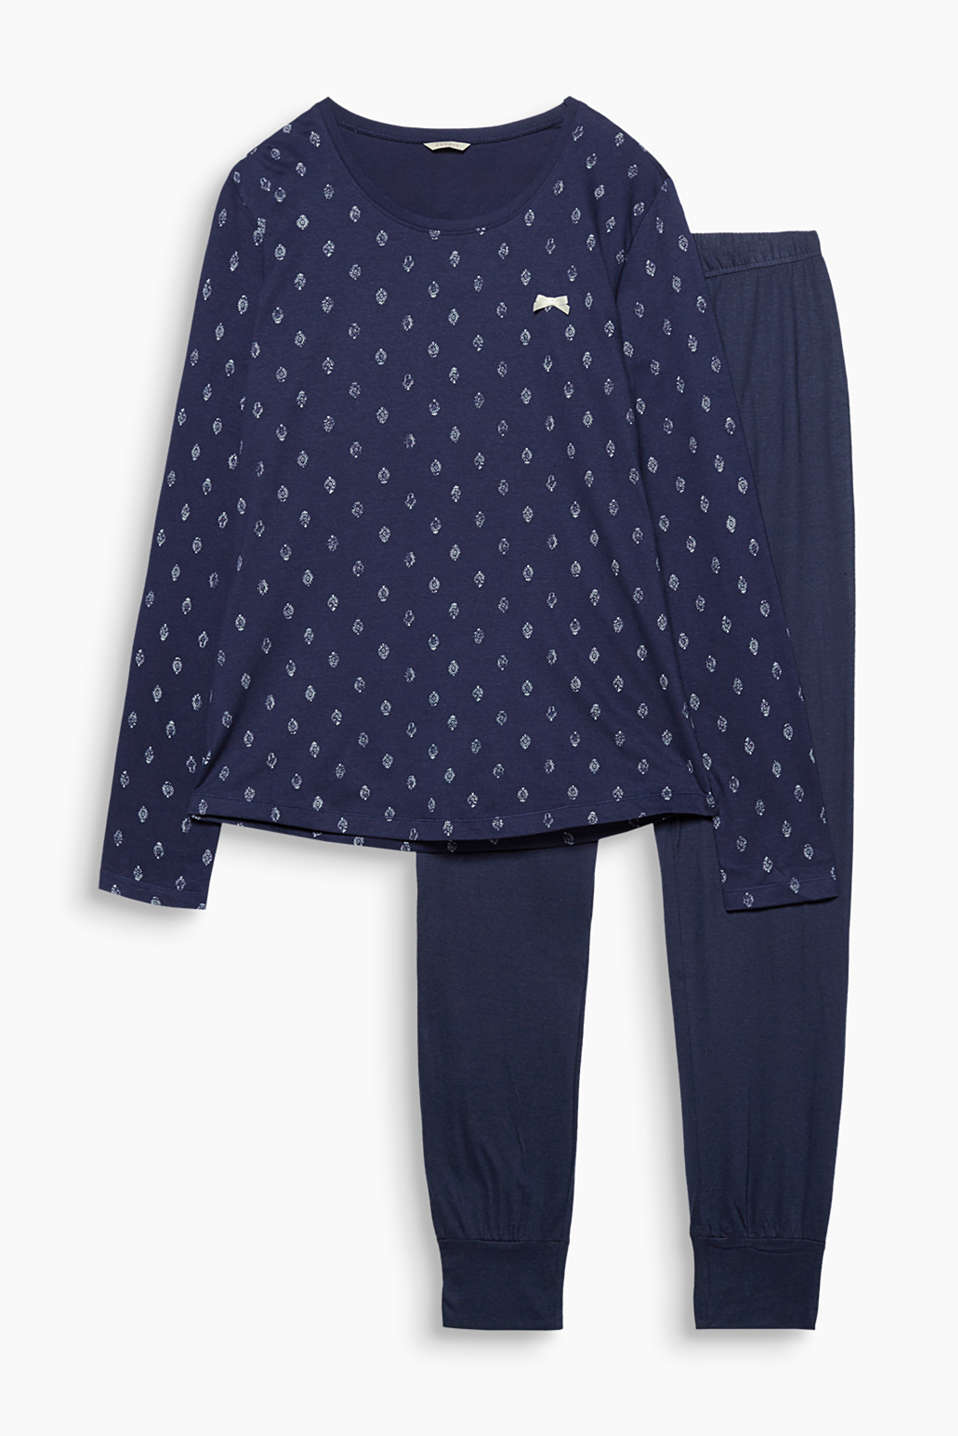 These pure cotton-jersey pyjamas featuring a patterned long sleeve top are so comfy to sleep in!